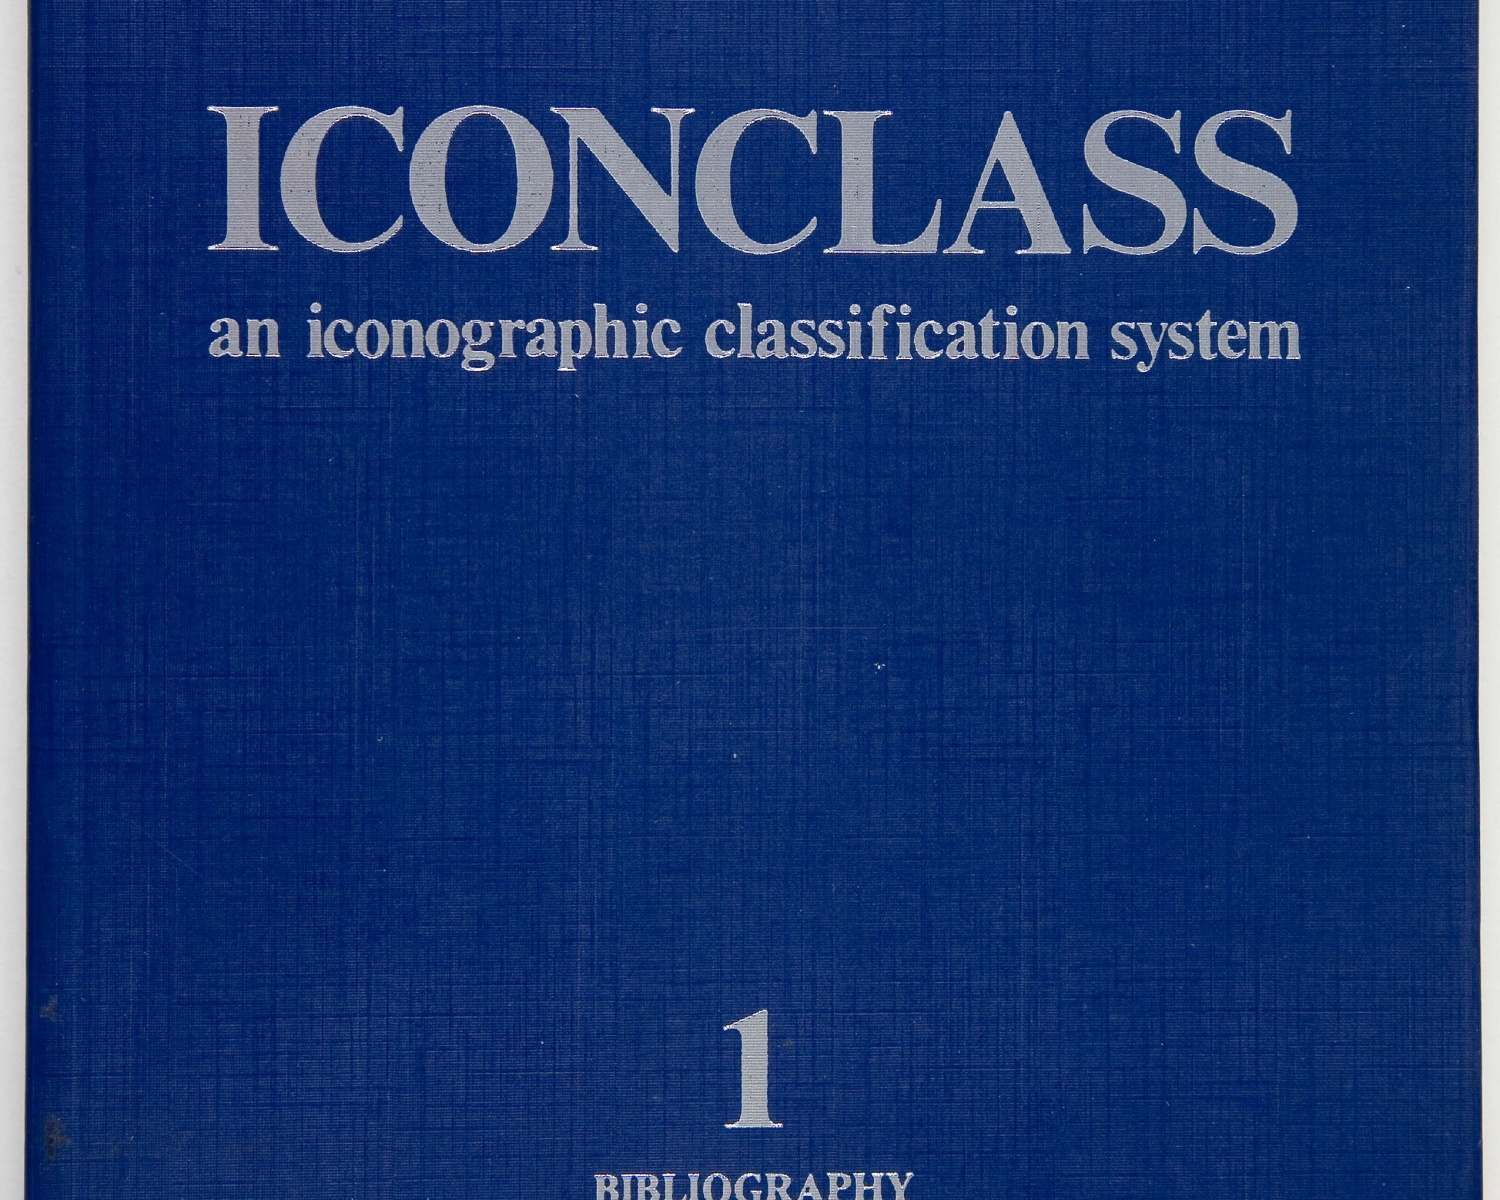 H. van de WAAL, Iconclass: an iconographic classification system. Amsterdam: North-Holland Pub. Co., 1973